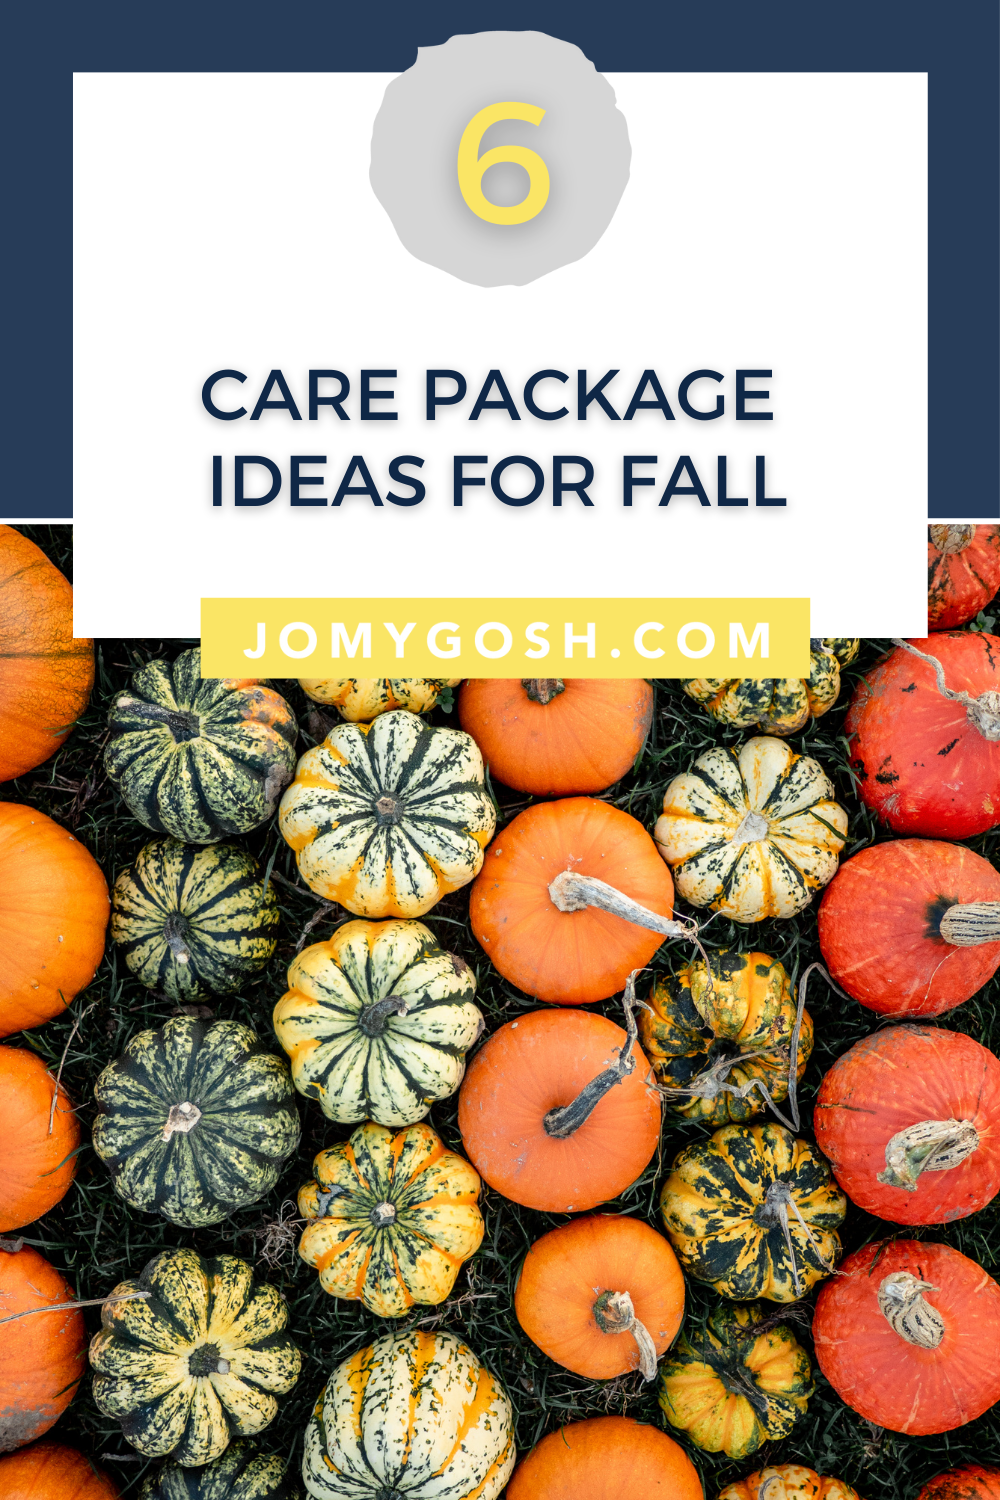 Use these ideas for your next autumn care package. #fall #carepackage #carepackages #military #militaryspouse #milspouse #college #collegestudent #lds #missionary #sendmoremail #happymail